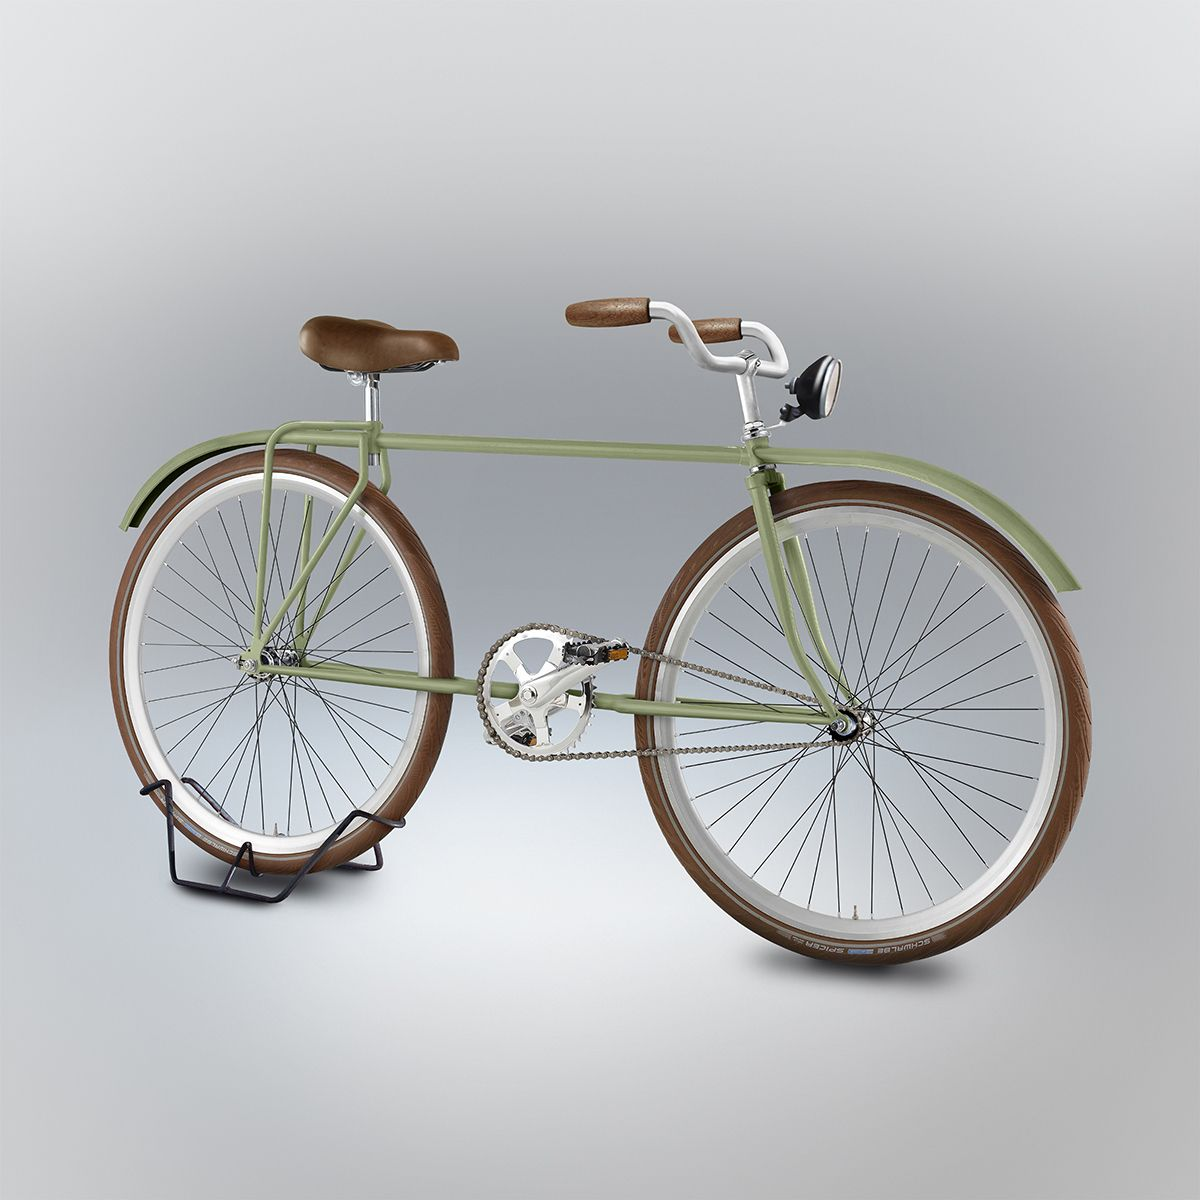 If you were asked to draw a bicycle right now, from memory, without ...